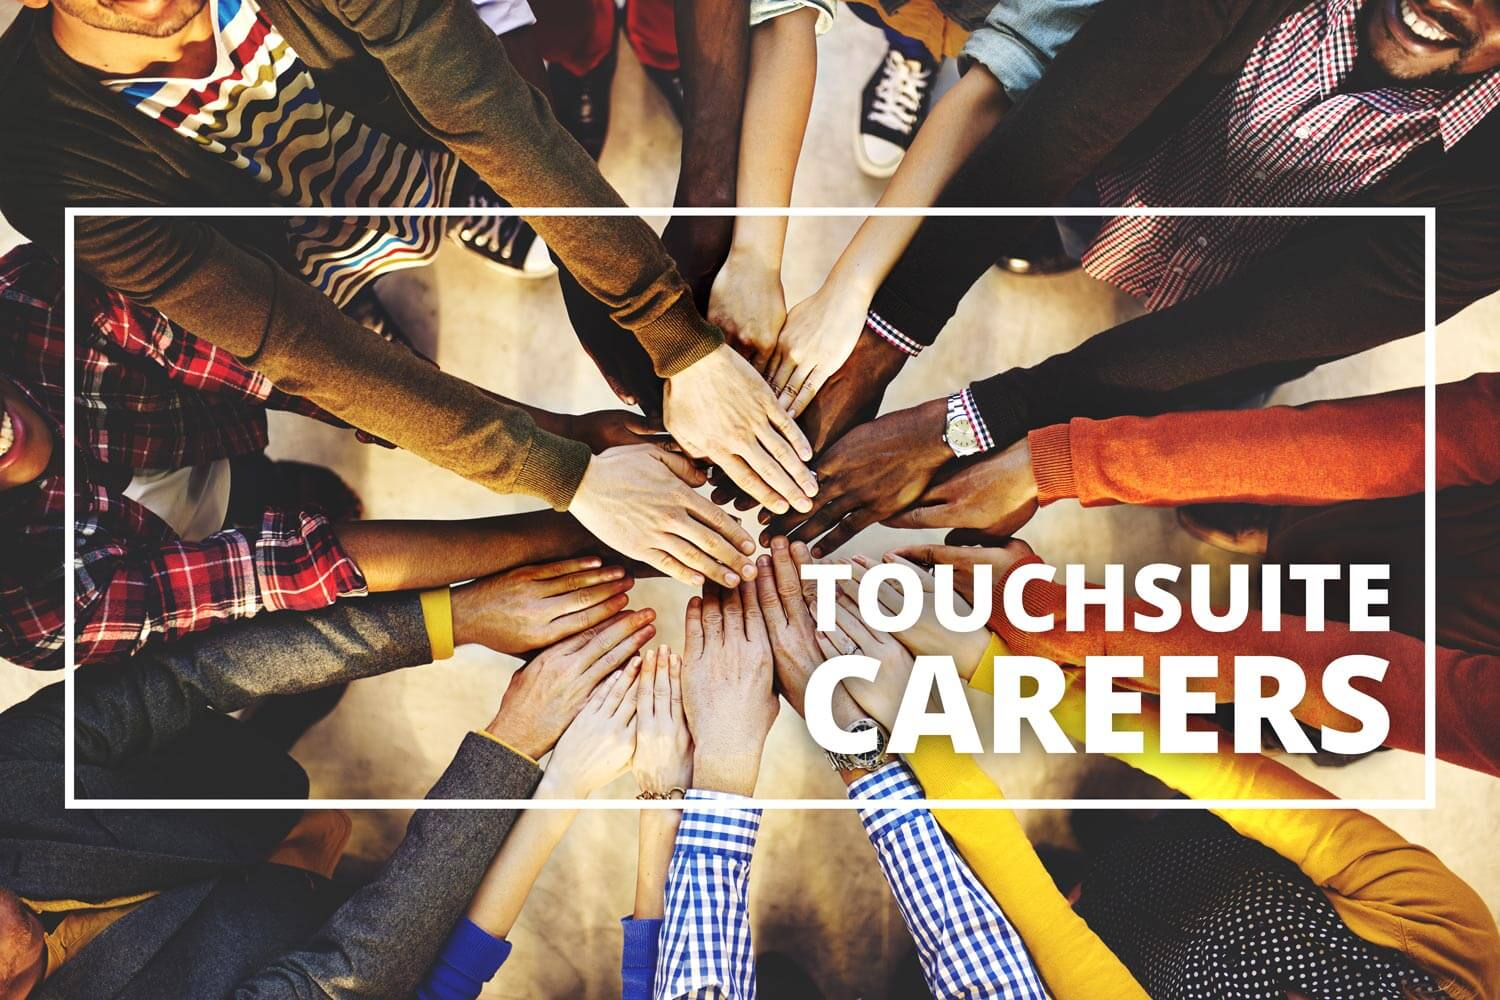 touchsuite-careers